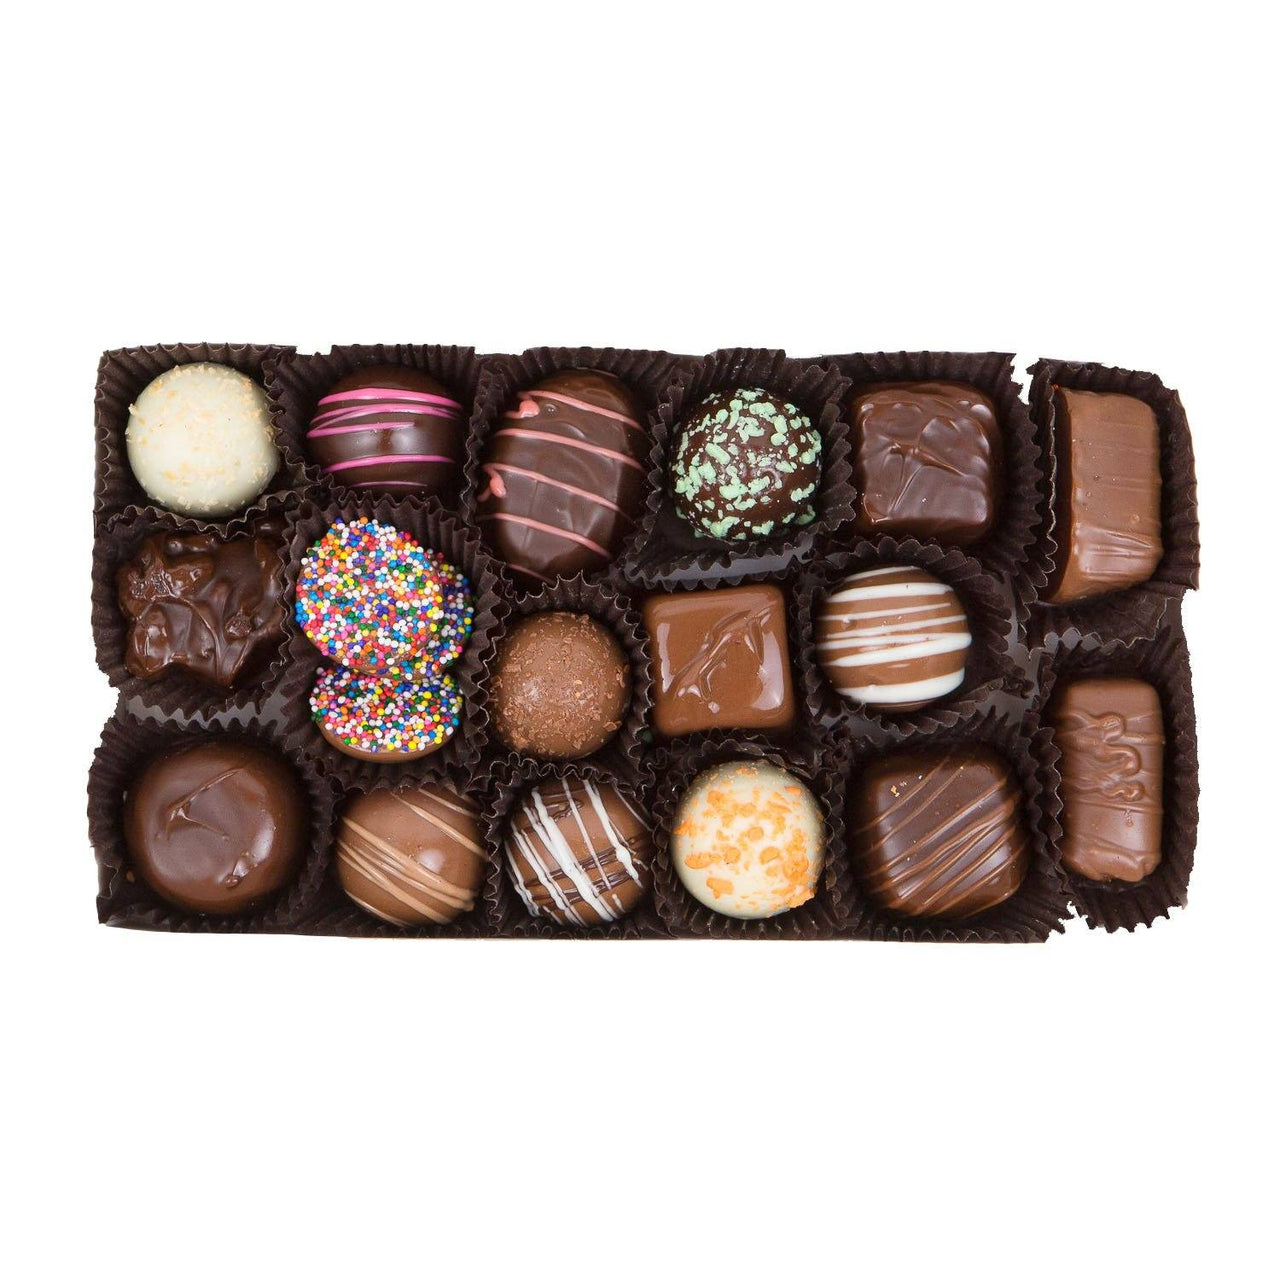 Gifts for Girls - Assorted Chocolate Gift Box - Jackie's Chocolate